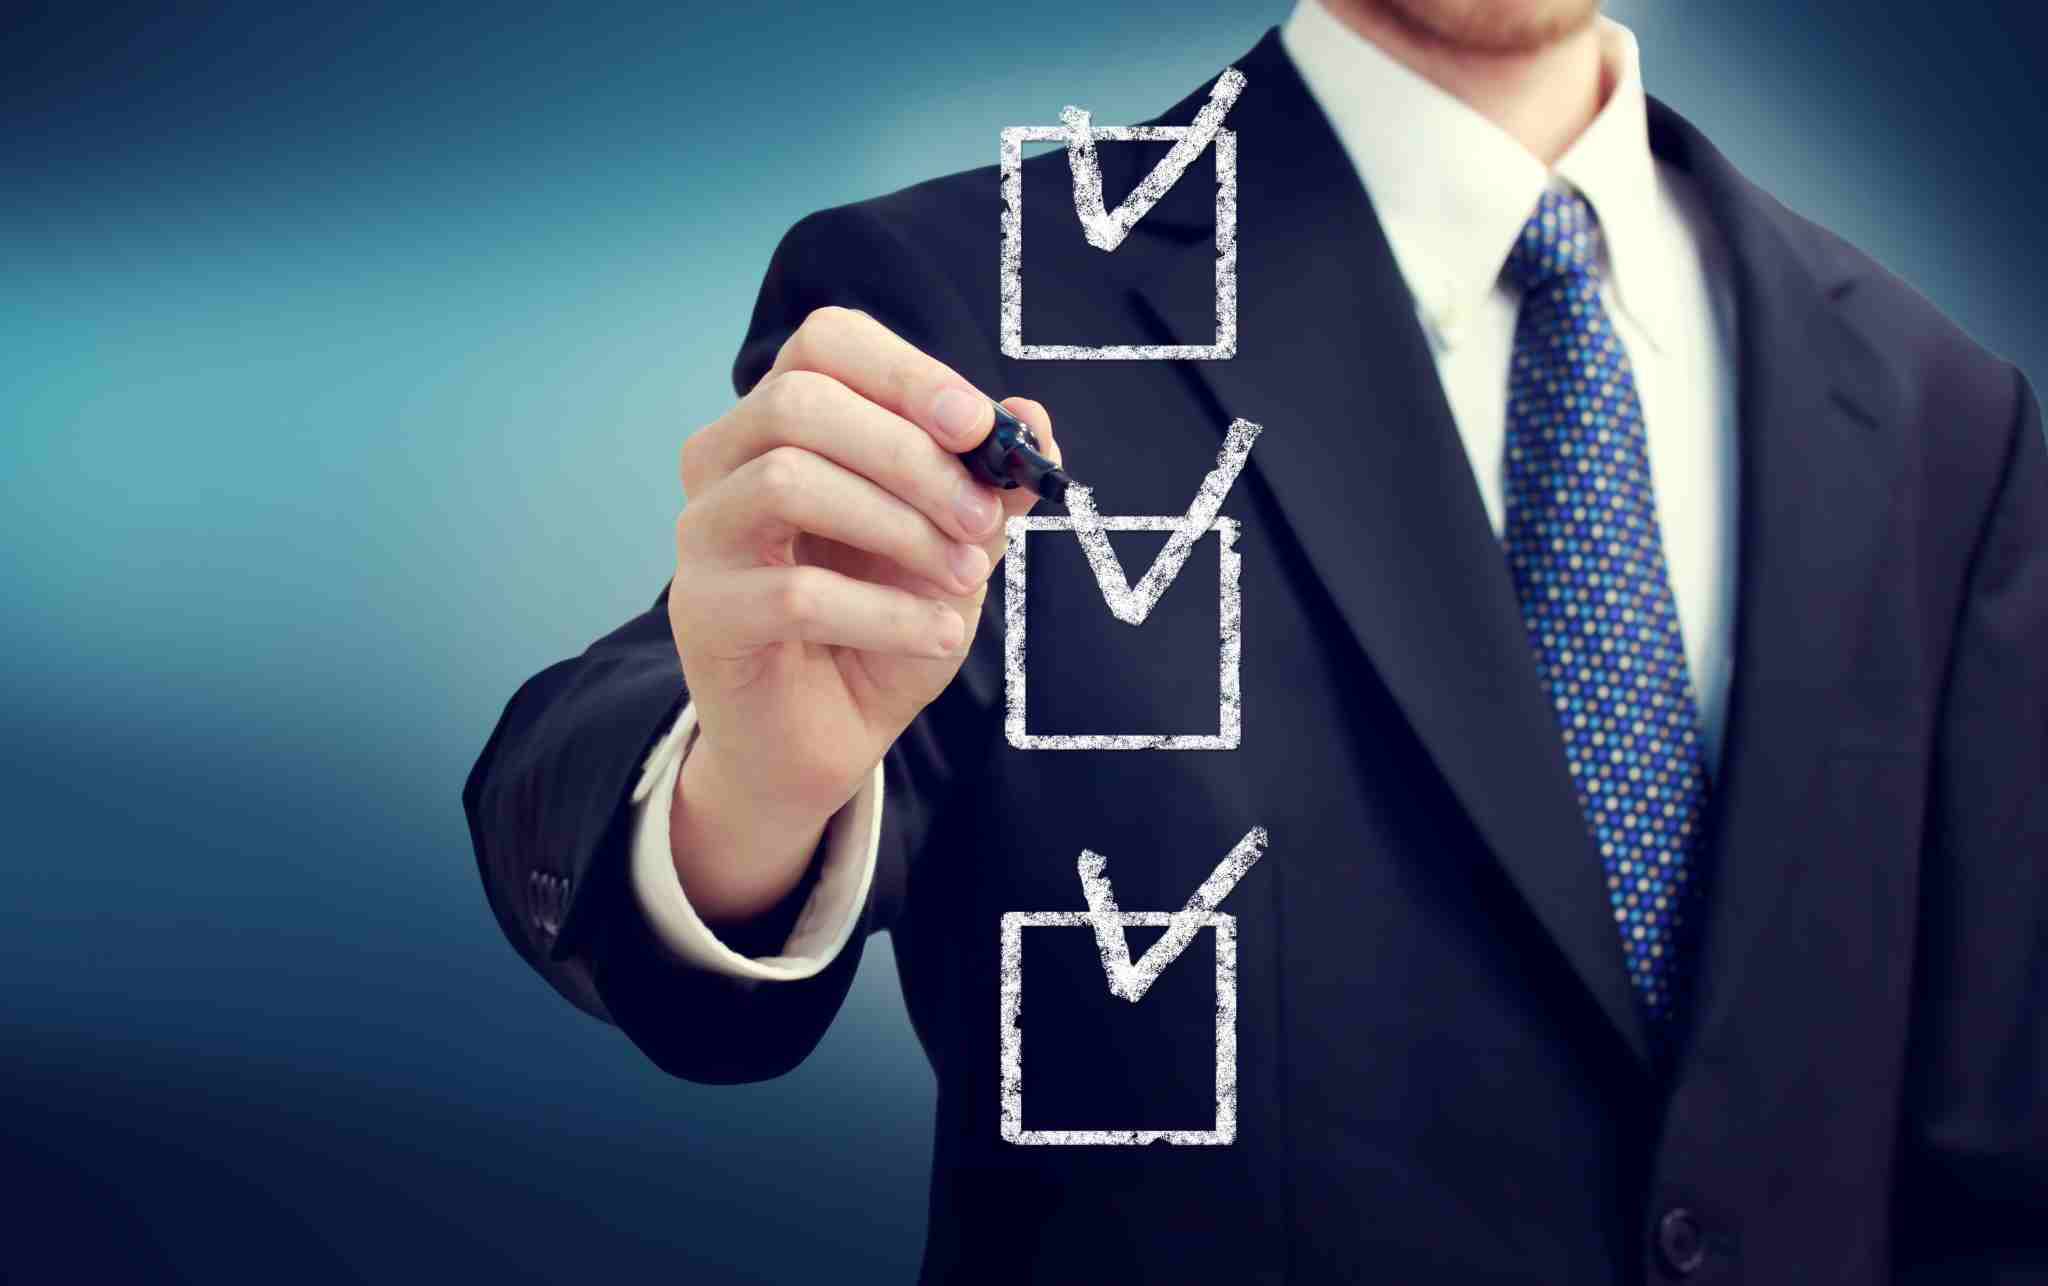 Create checklists for excellence in work